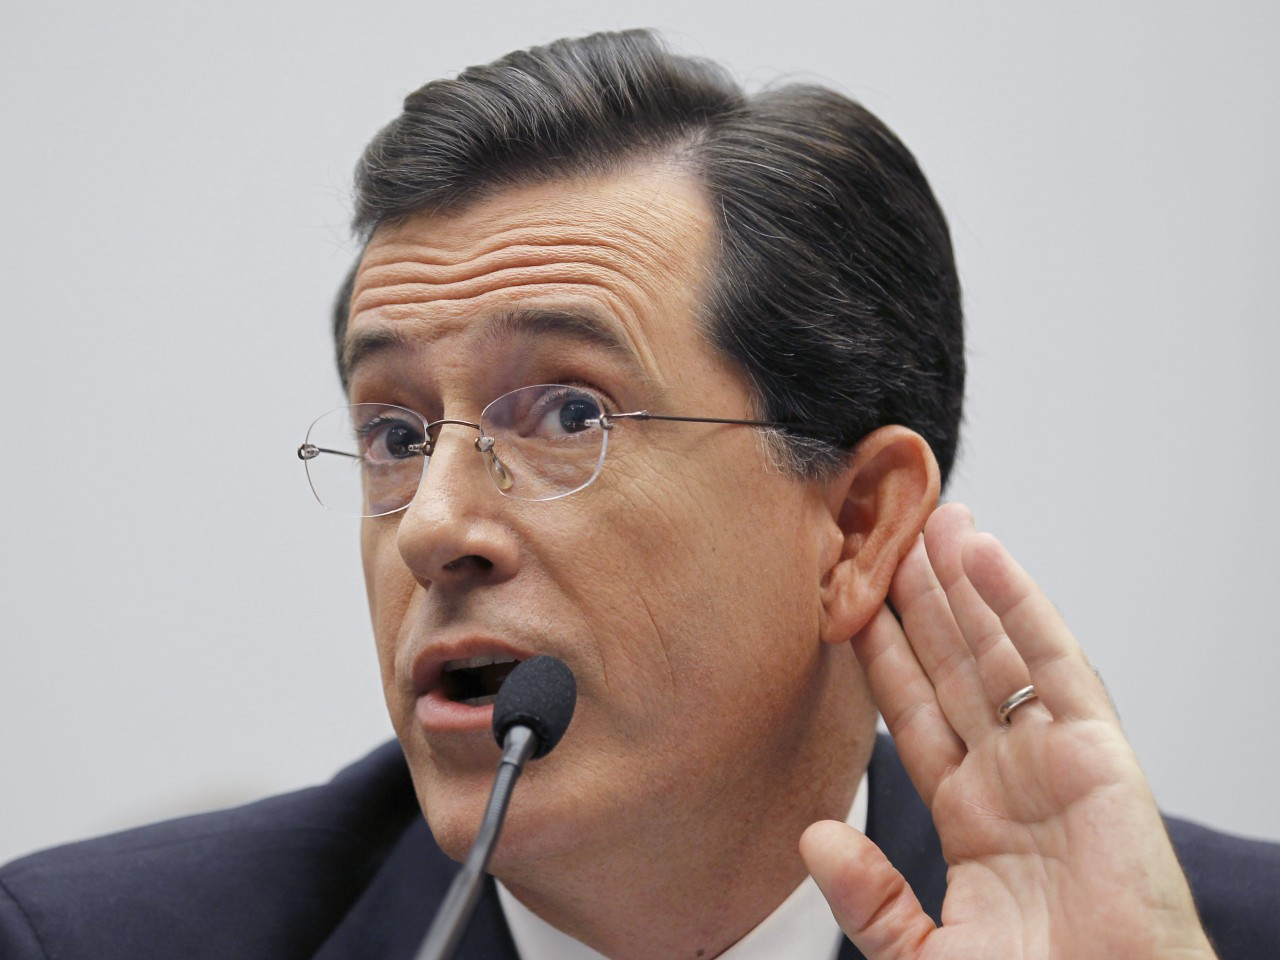 EnlargeComedian Stephen Colbert, host of the Colbert Report, testifies on Capitol Hill in Washington, Friday, Sept. 24, 2010, before the House Immigration, ...